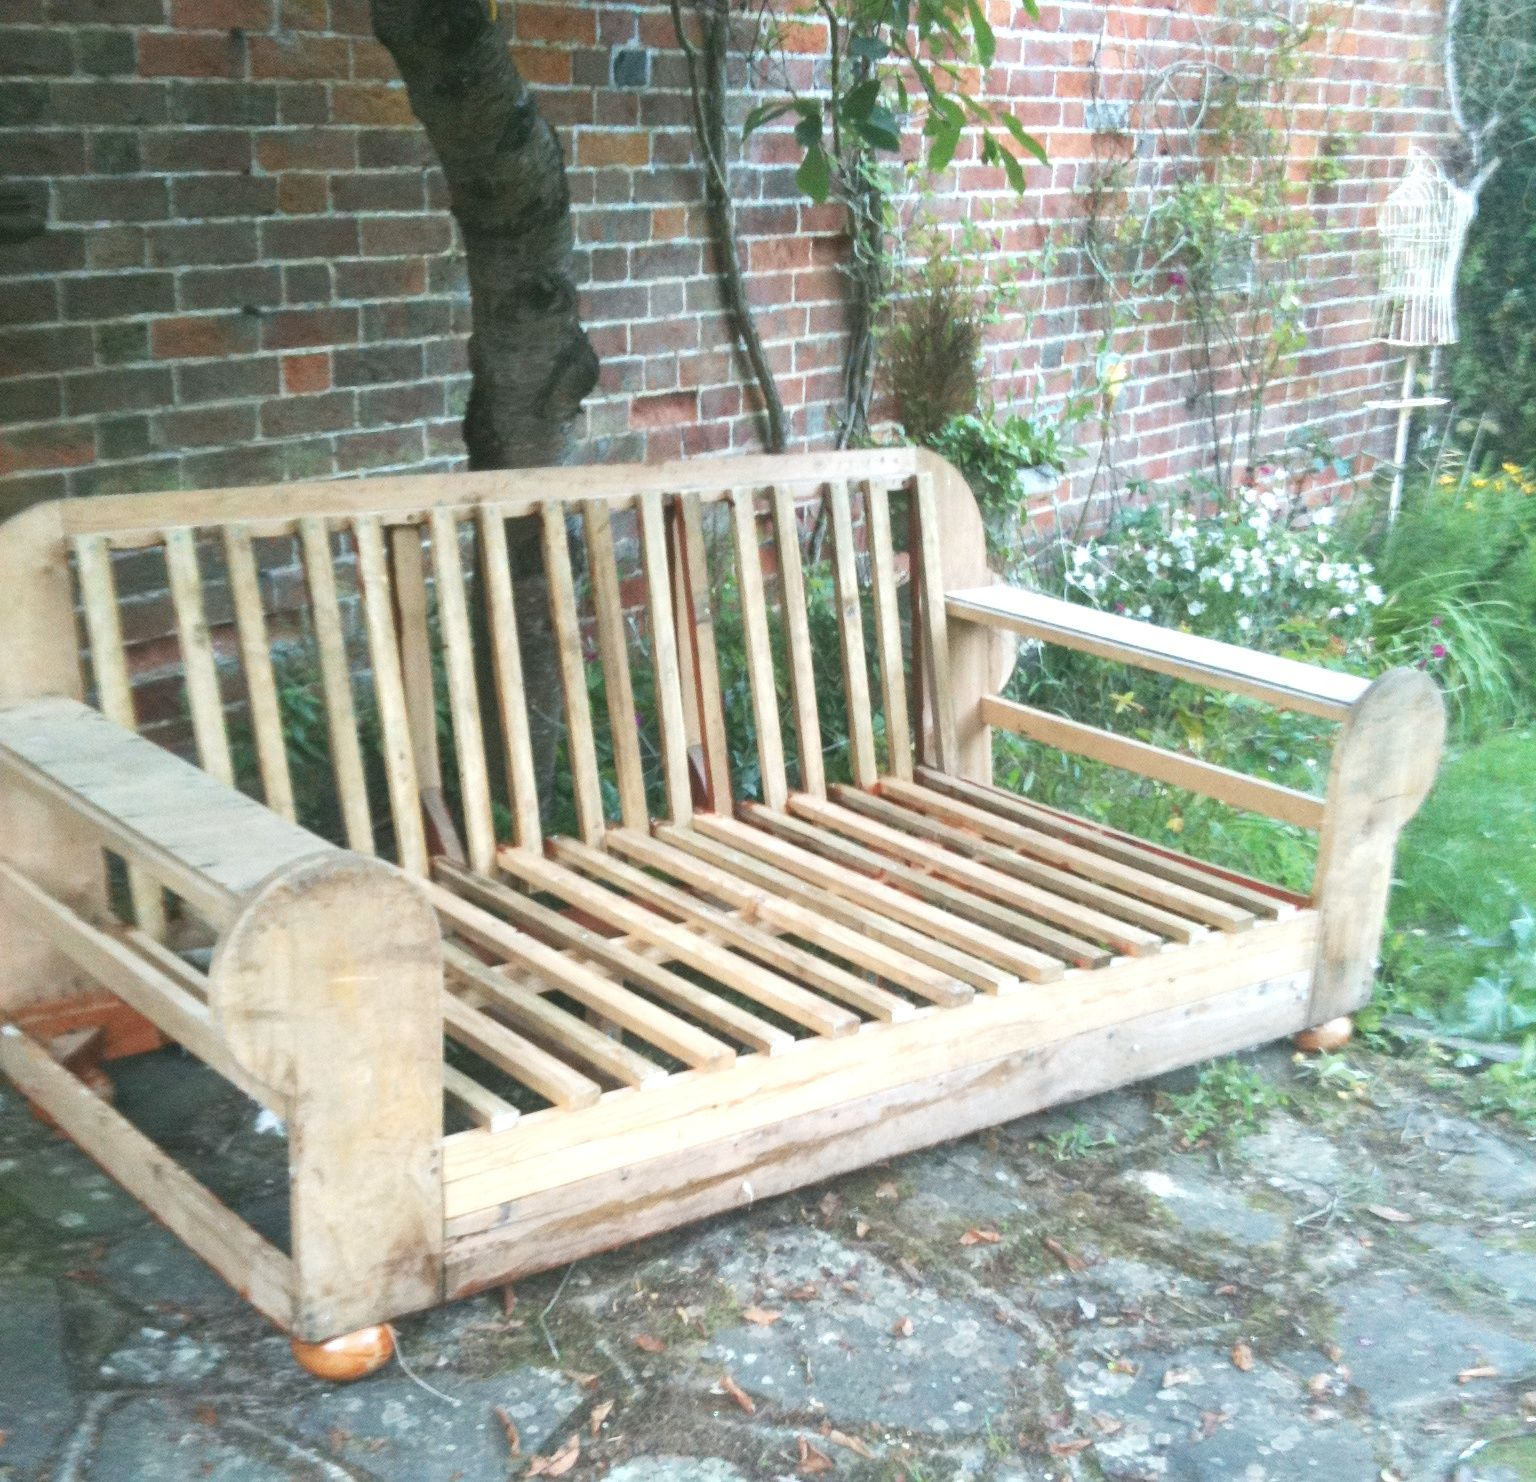 How to upcycle an old sofa into garden furniture | MIAMI ...